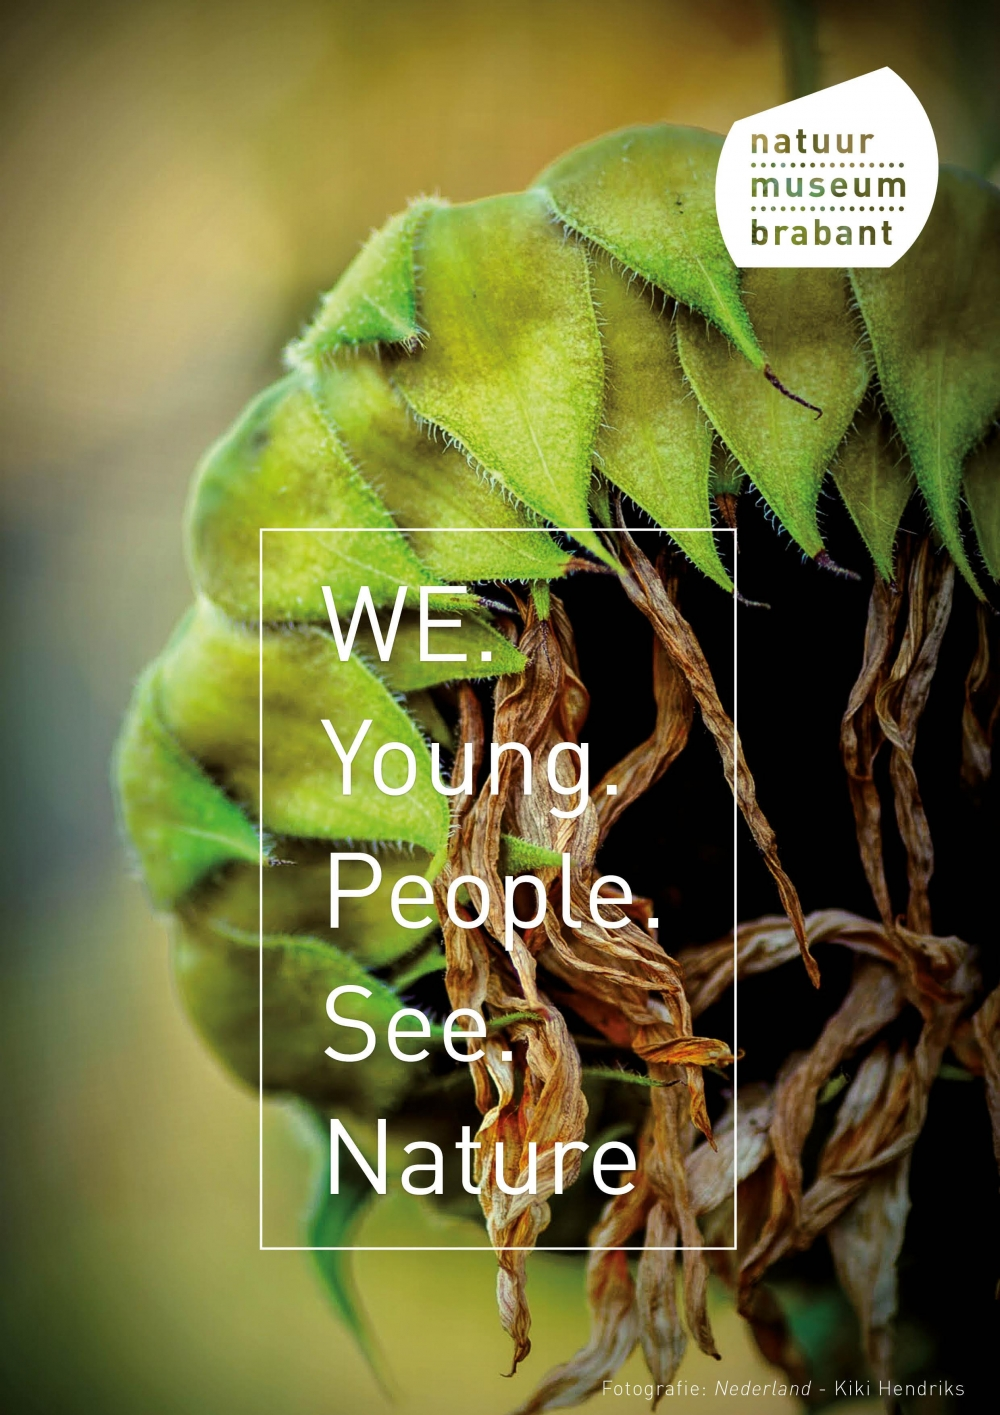 WE Young People See Nature